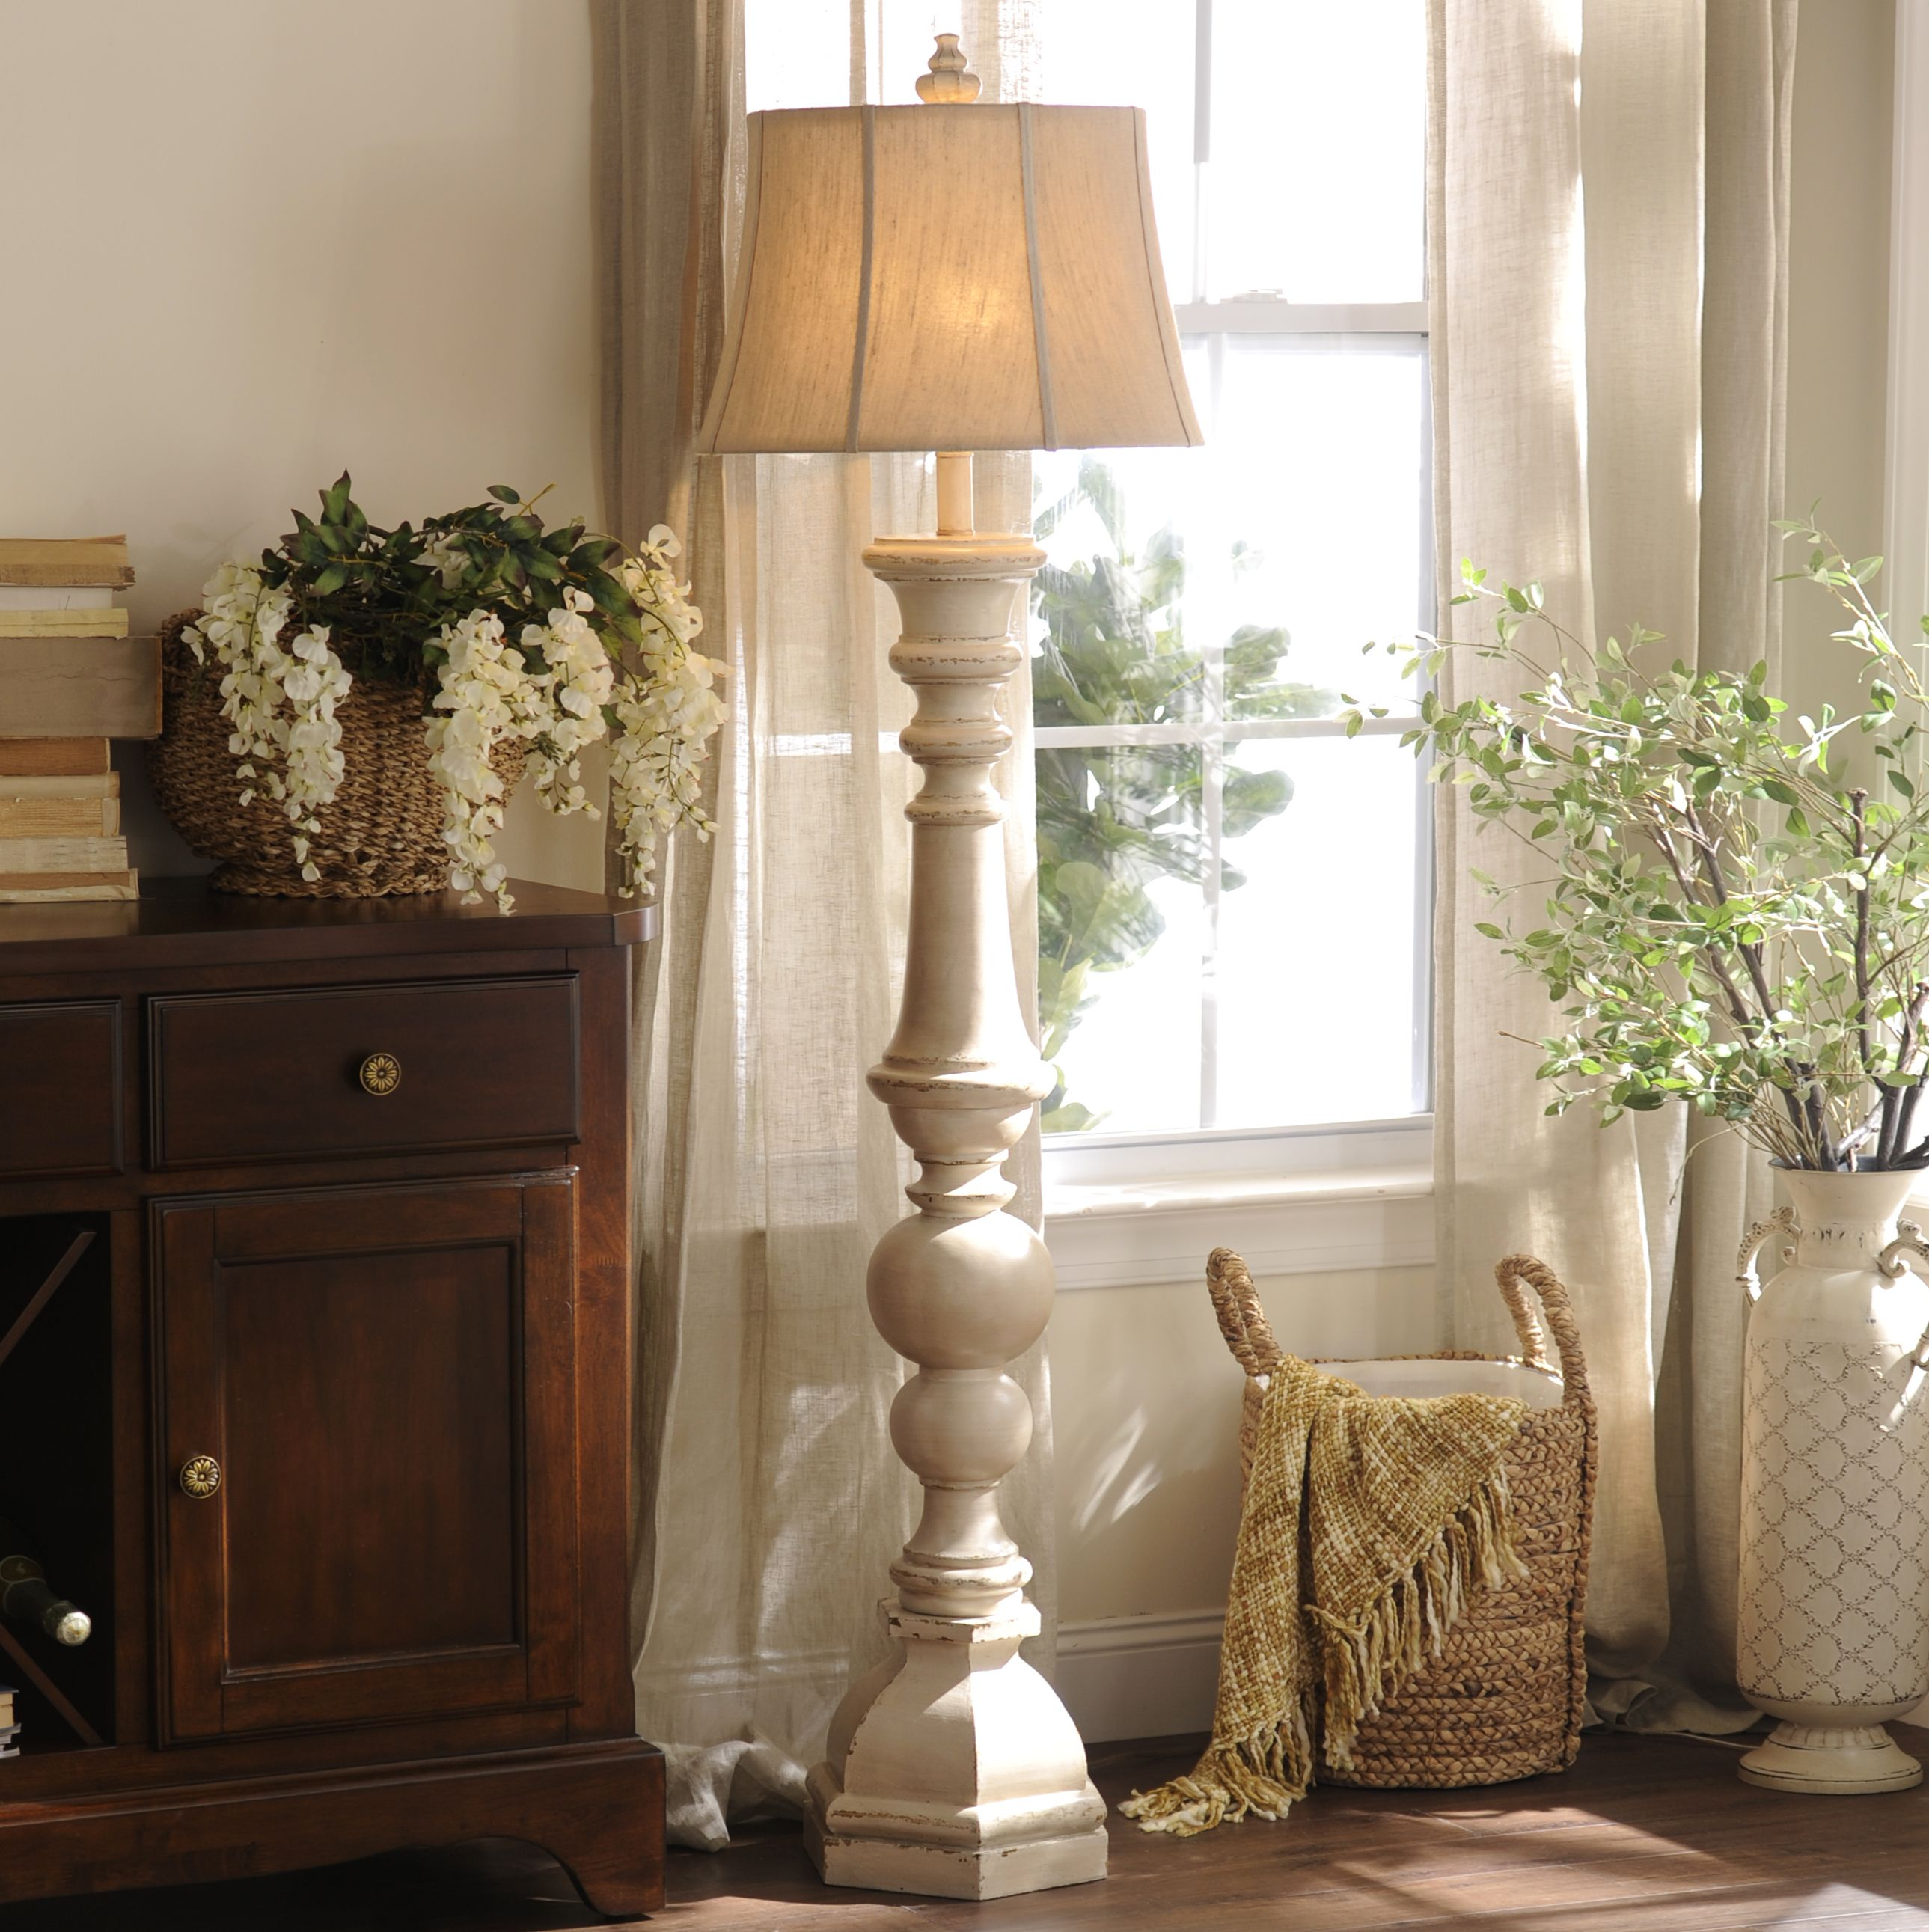 Don T Just Light Up Your Room Illuminate It Our Mackinaw Cream Floor Lamp Is On Of Our Favorit Cream Floor Lamp Floor Lamps Living Room Farmhouse Floor Lamps #stand #up #light #for #living #room